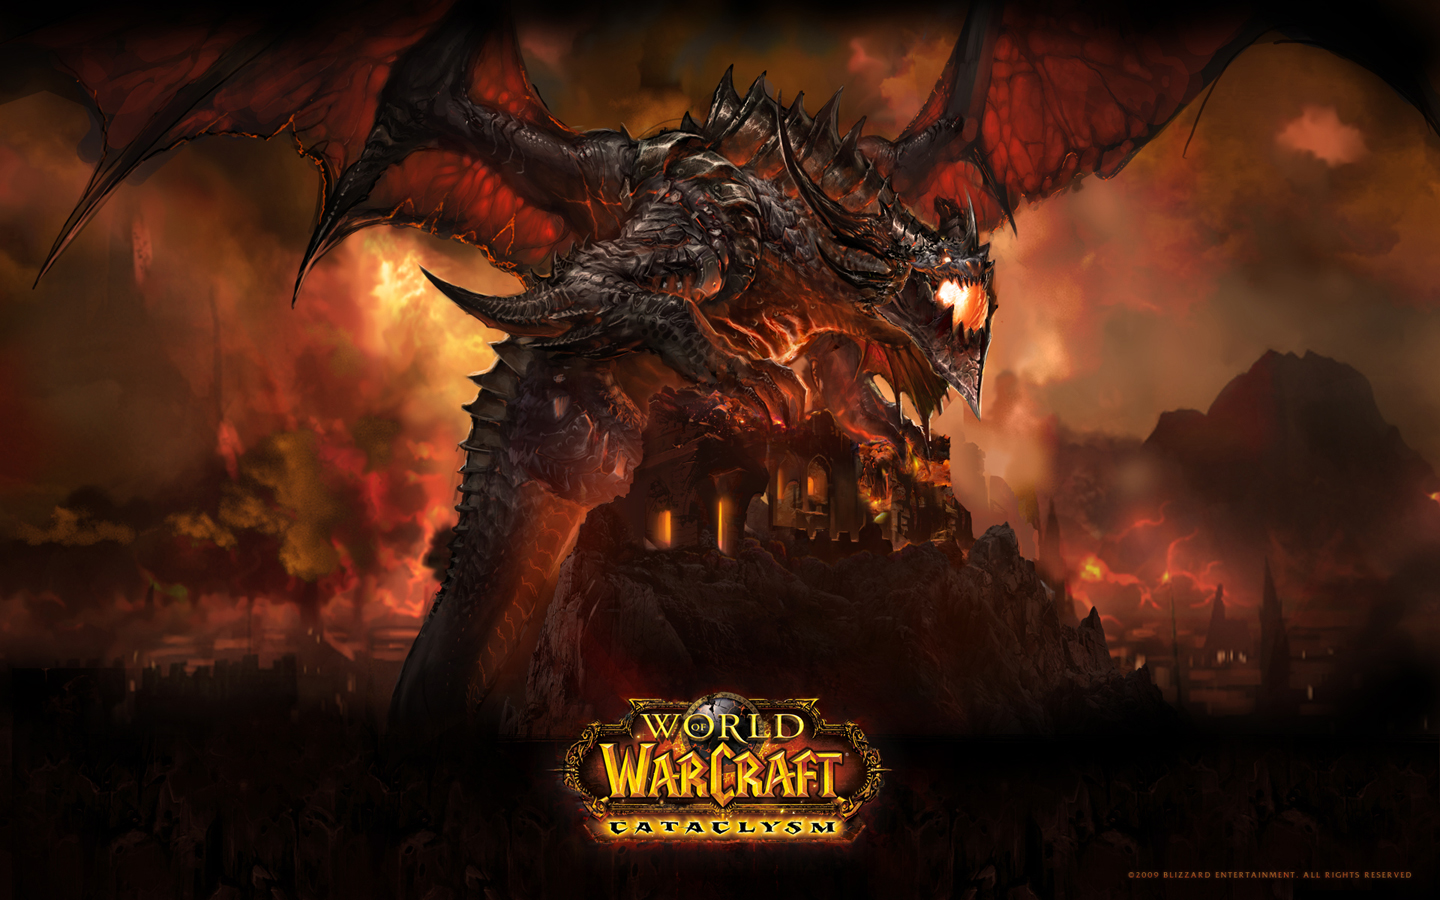 Deathwing - Possibly the most awesome looking dragon ever